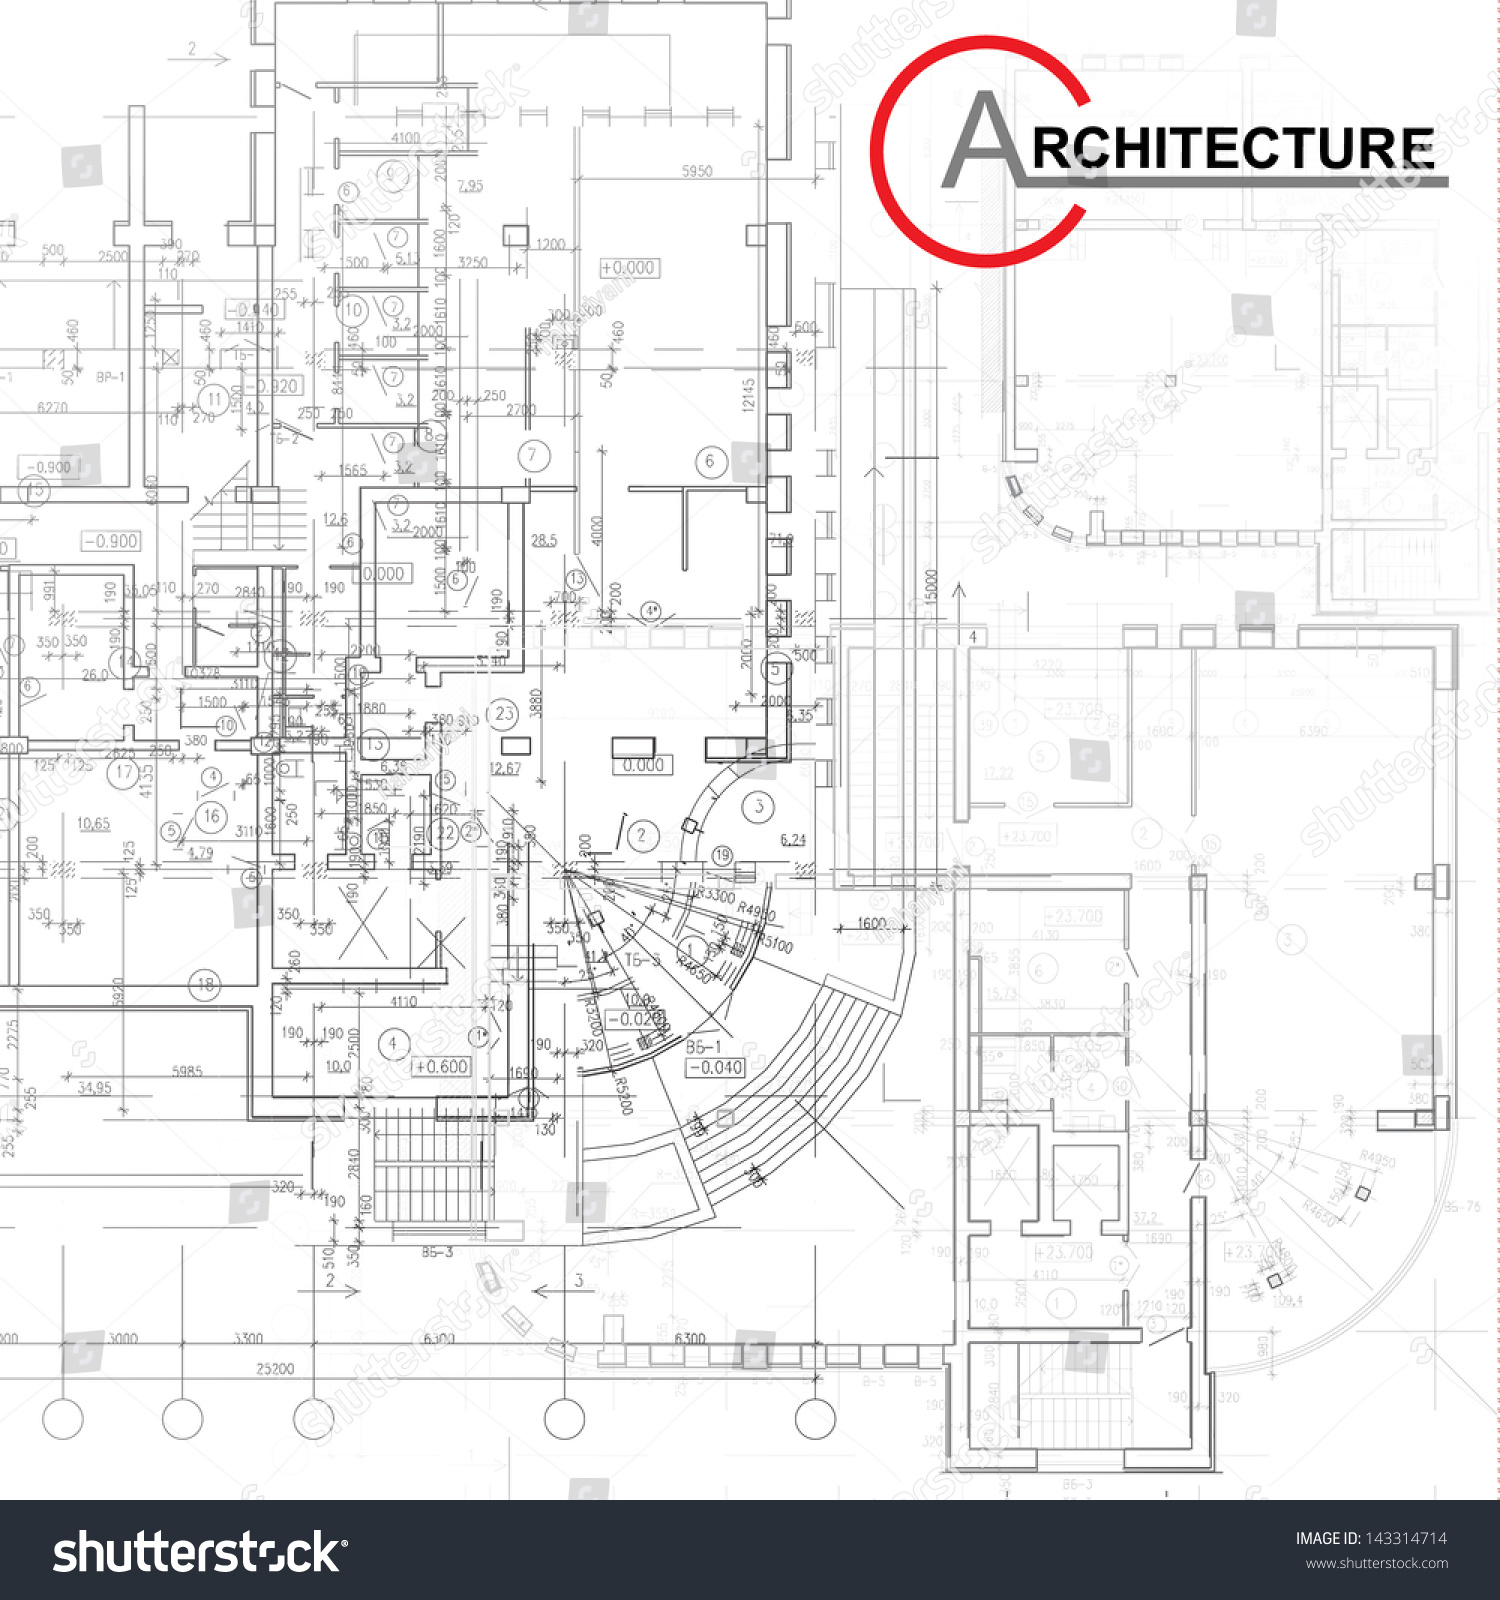 Template architectural design elements your business stock for Architectural design elements